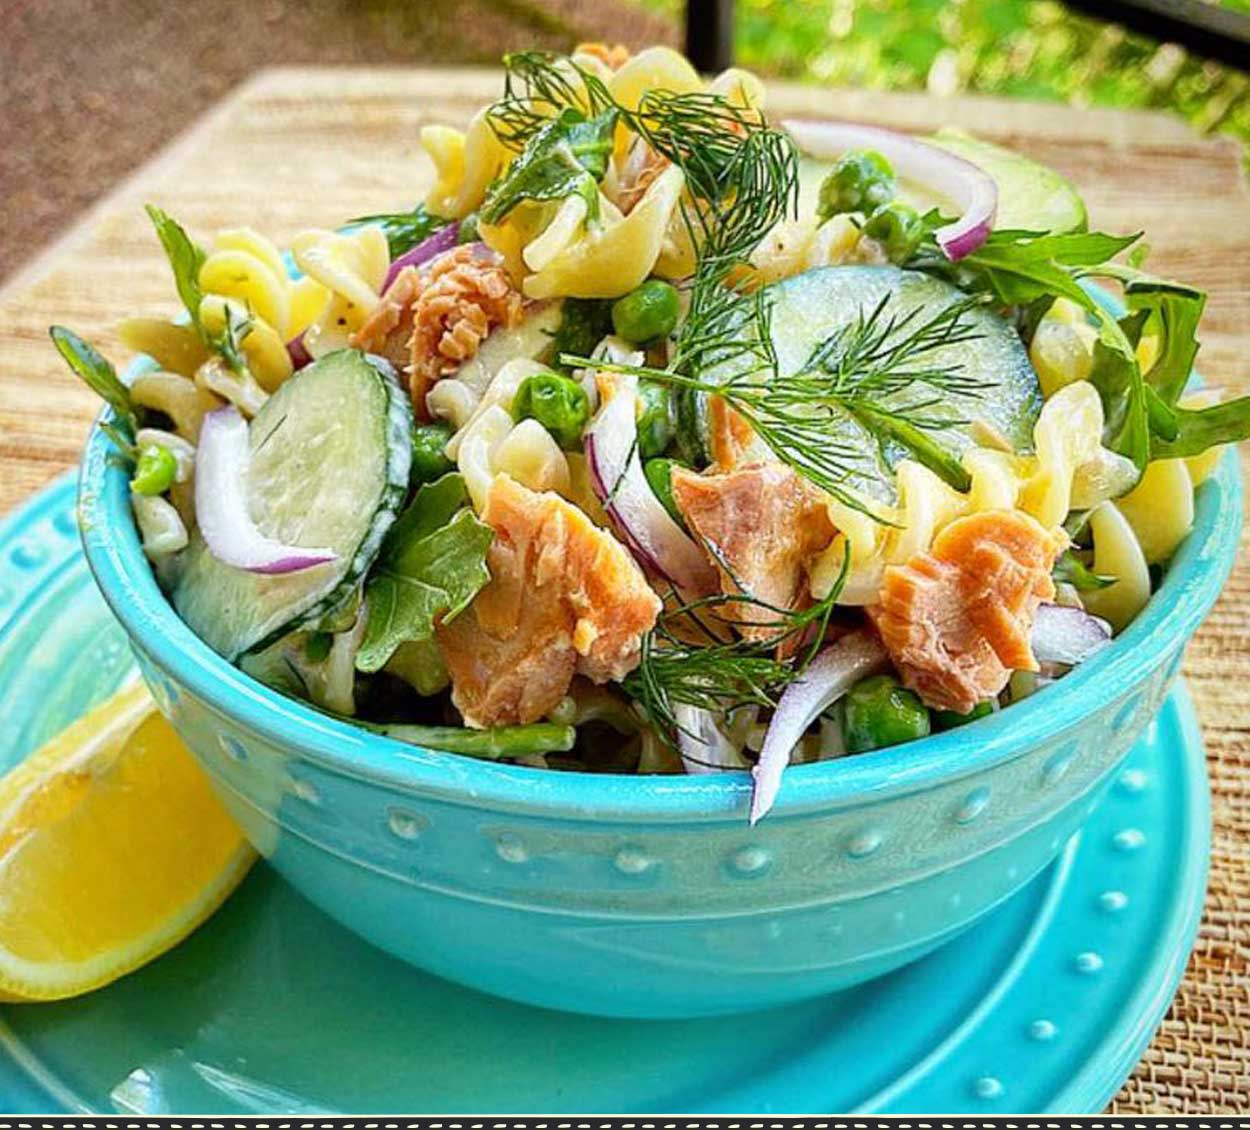 Fisherman's Market Pasta Salad made with canned Albacore Tuna